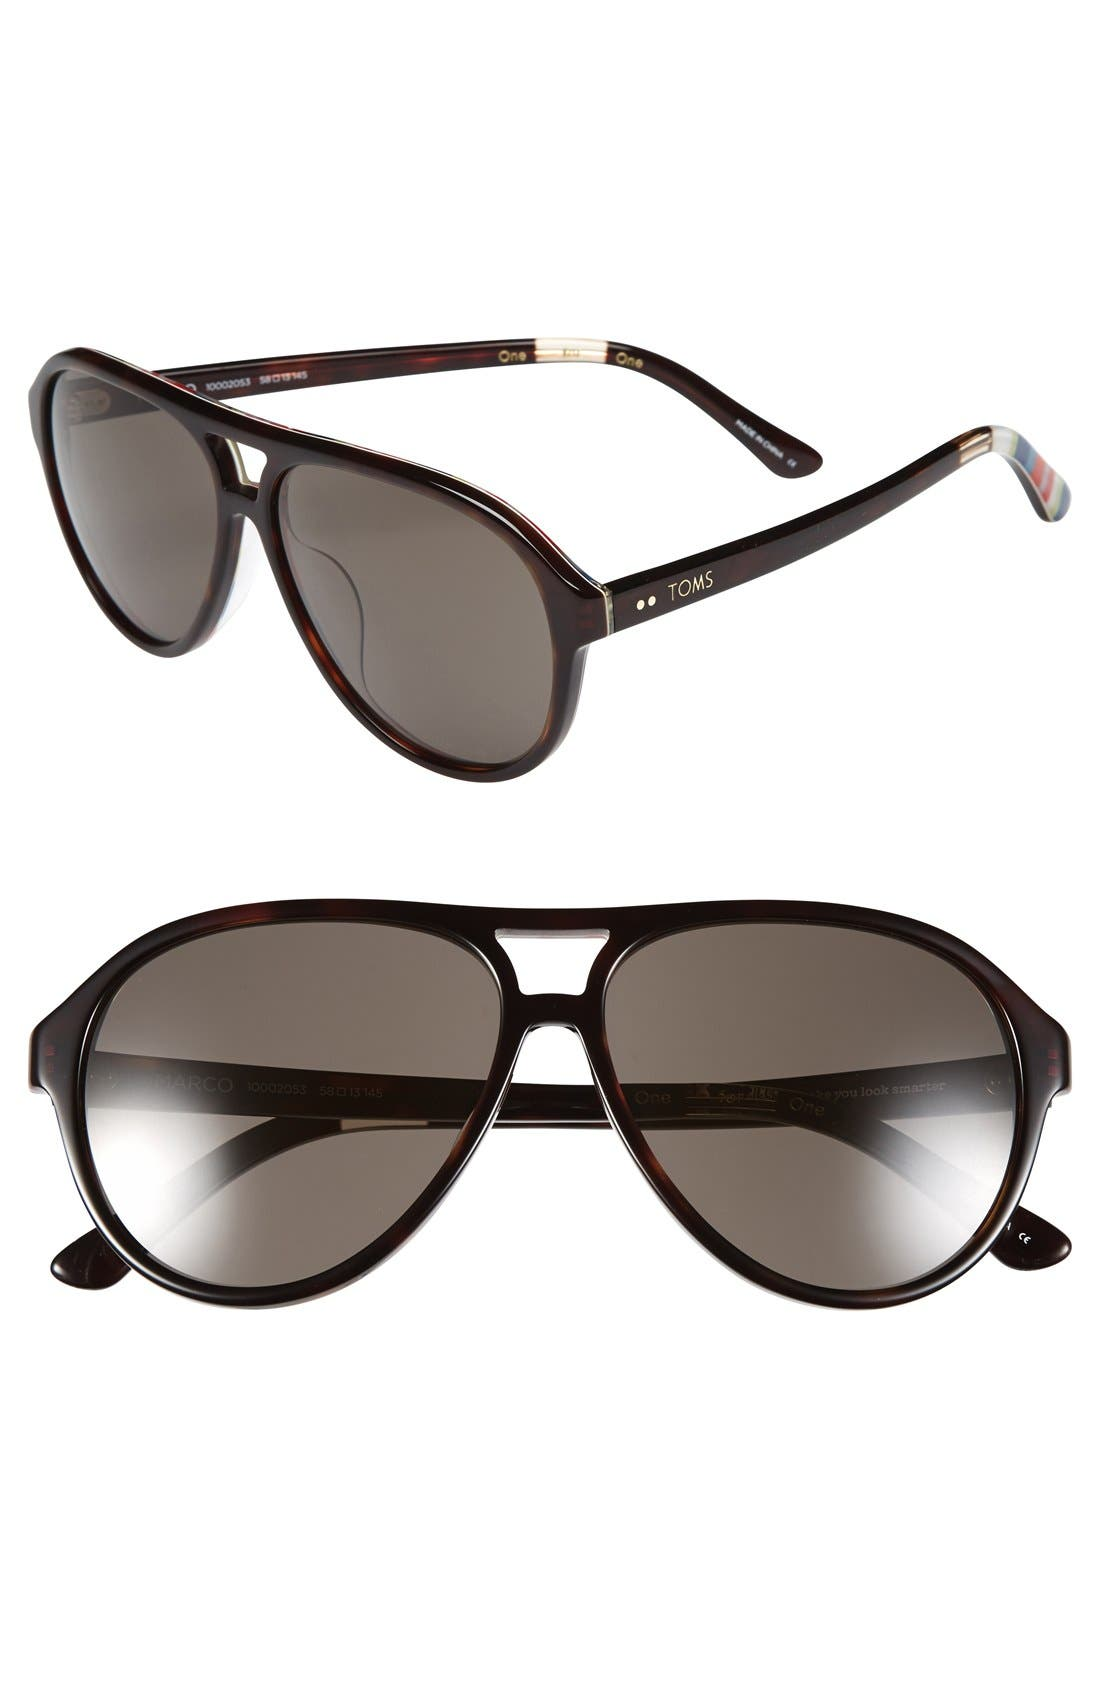 Alternate Image 1 Selected - TOMS 'Marco' 58mm Sunglasses